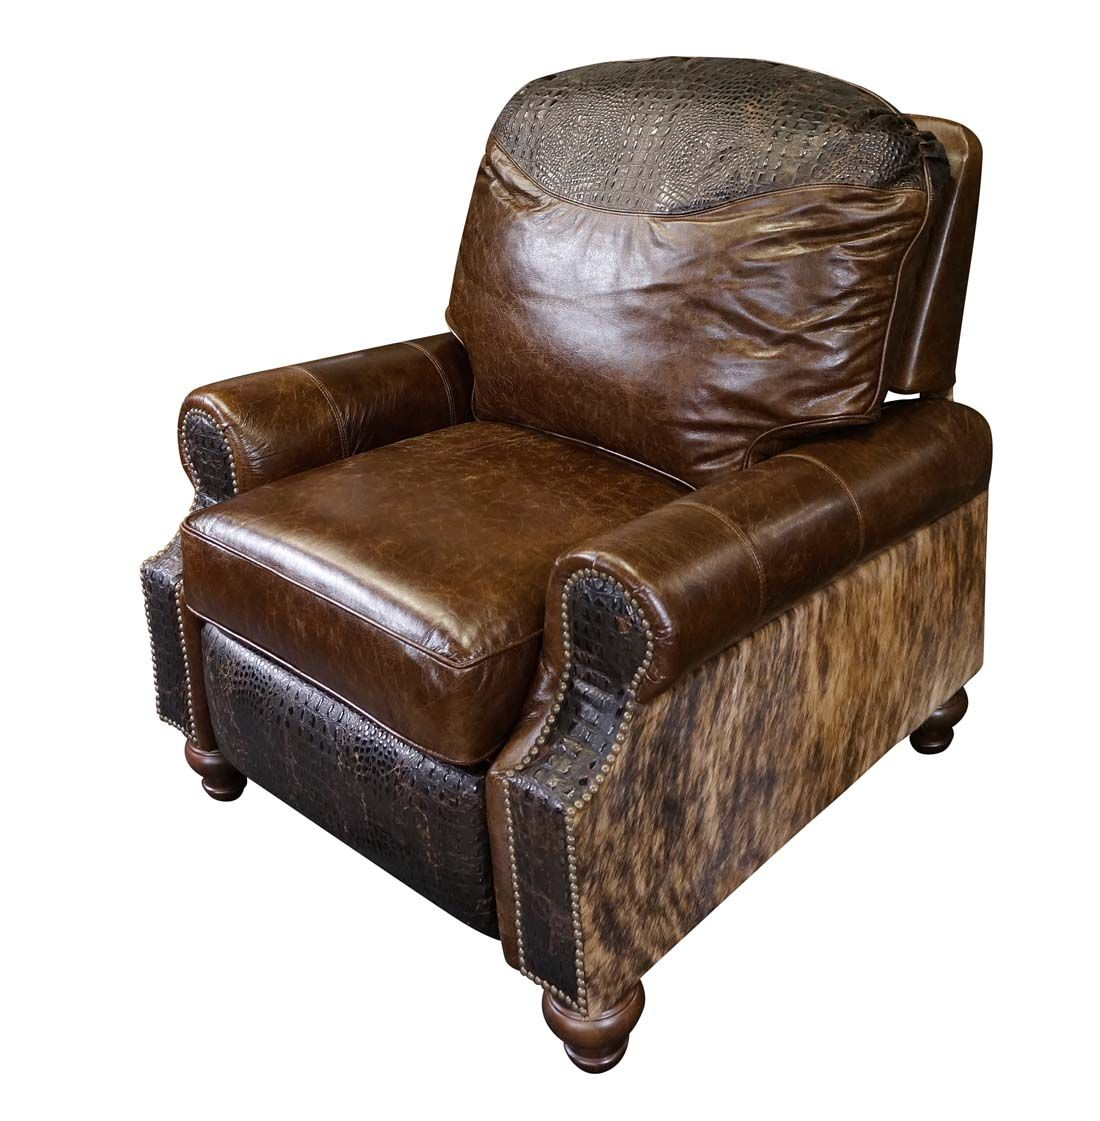 Western Royalty Leather Recliner Leather Recliner Chair Sofas